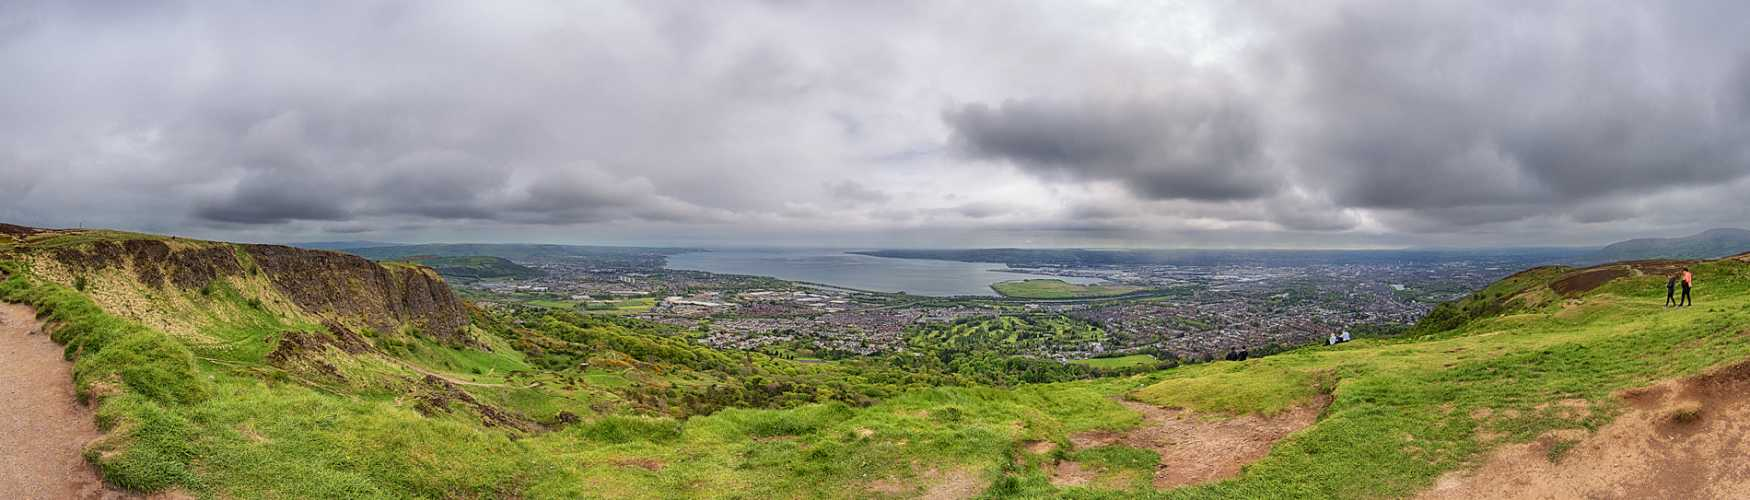 Cavehill - Northern Ireland